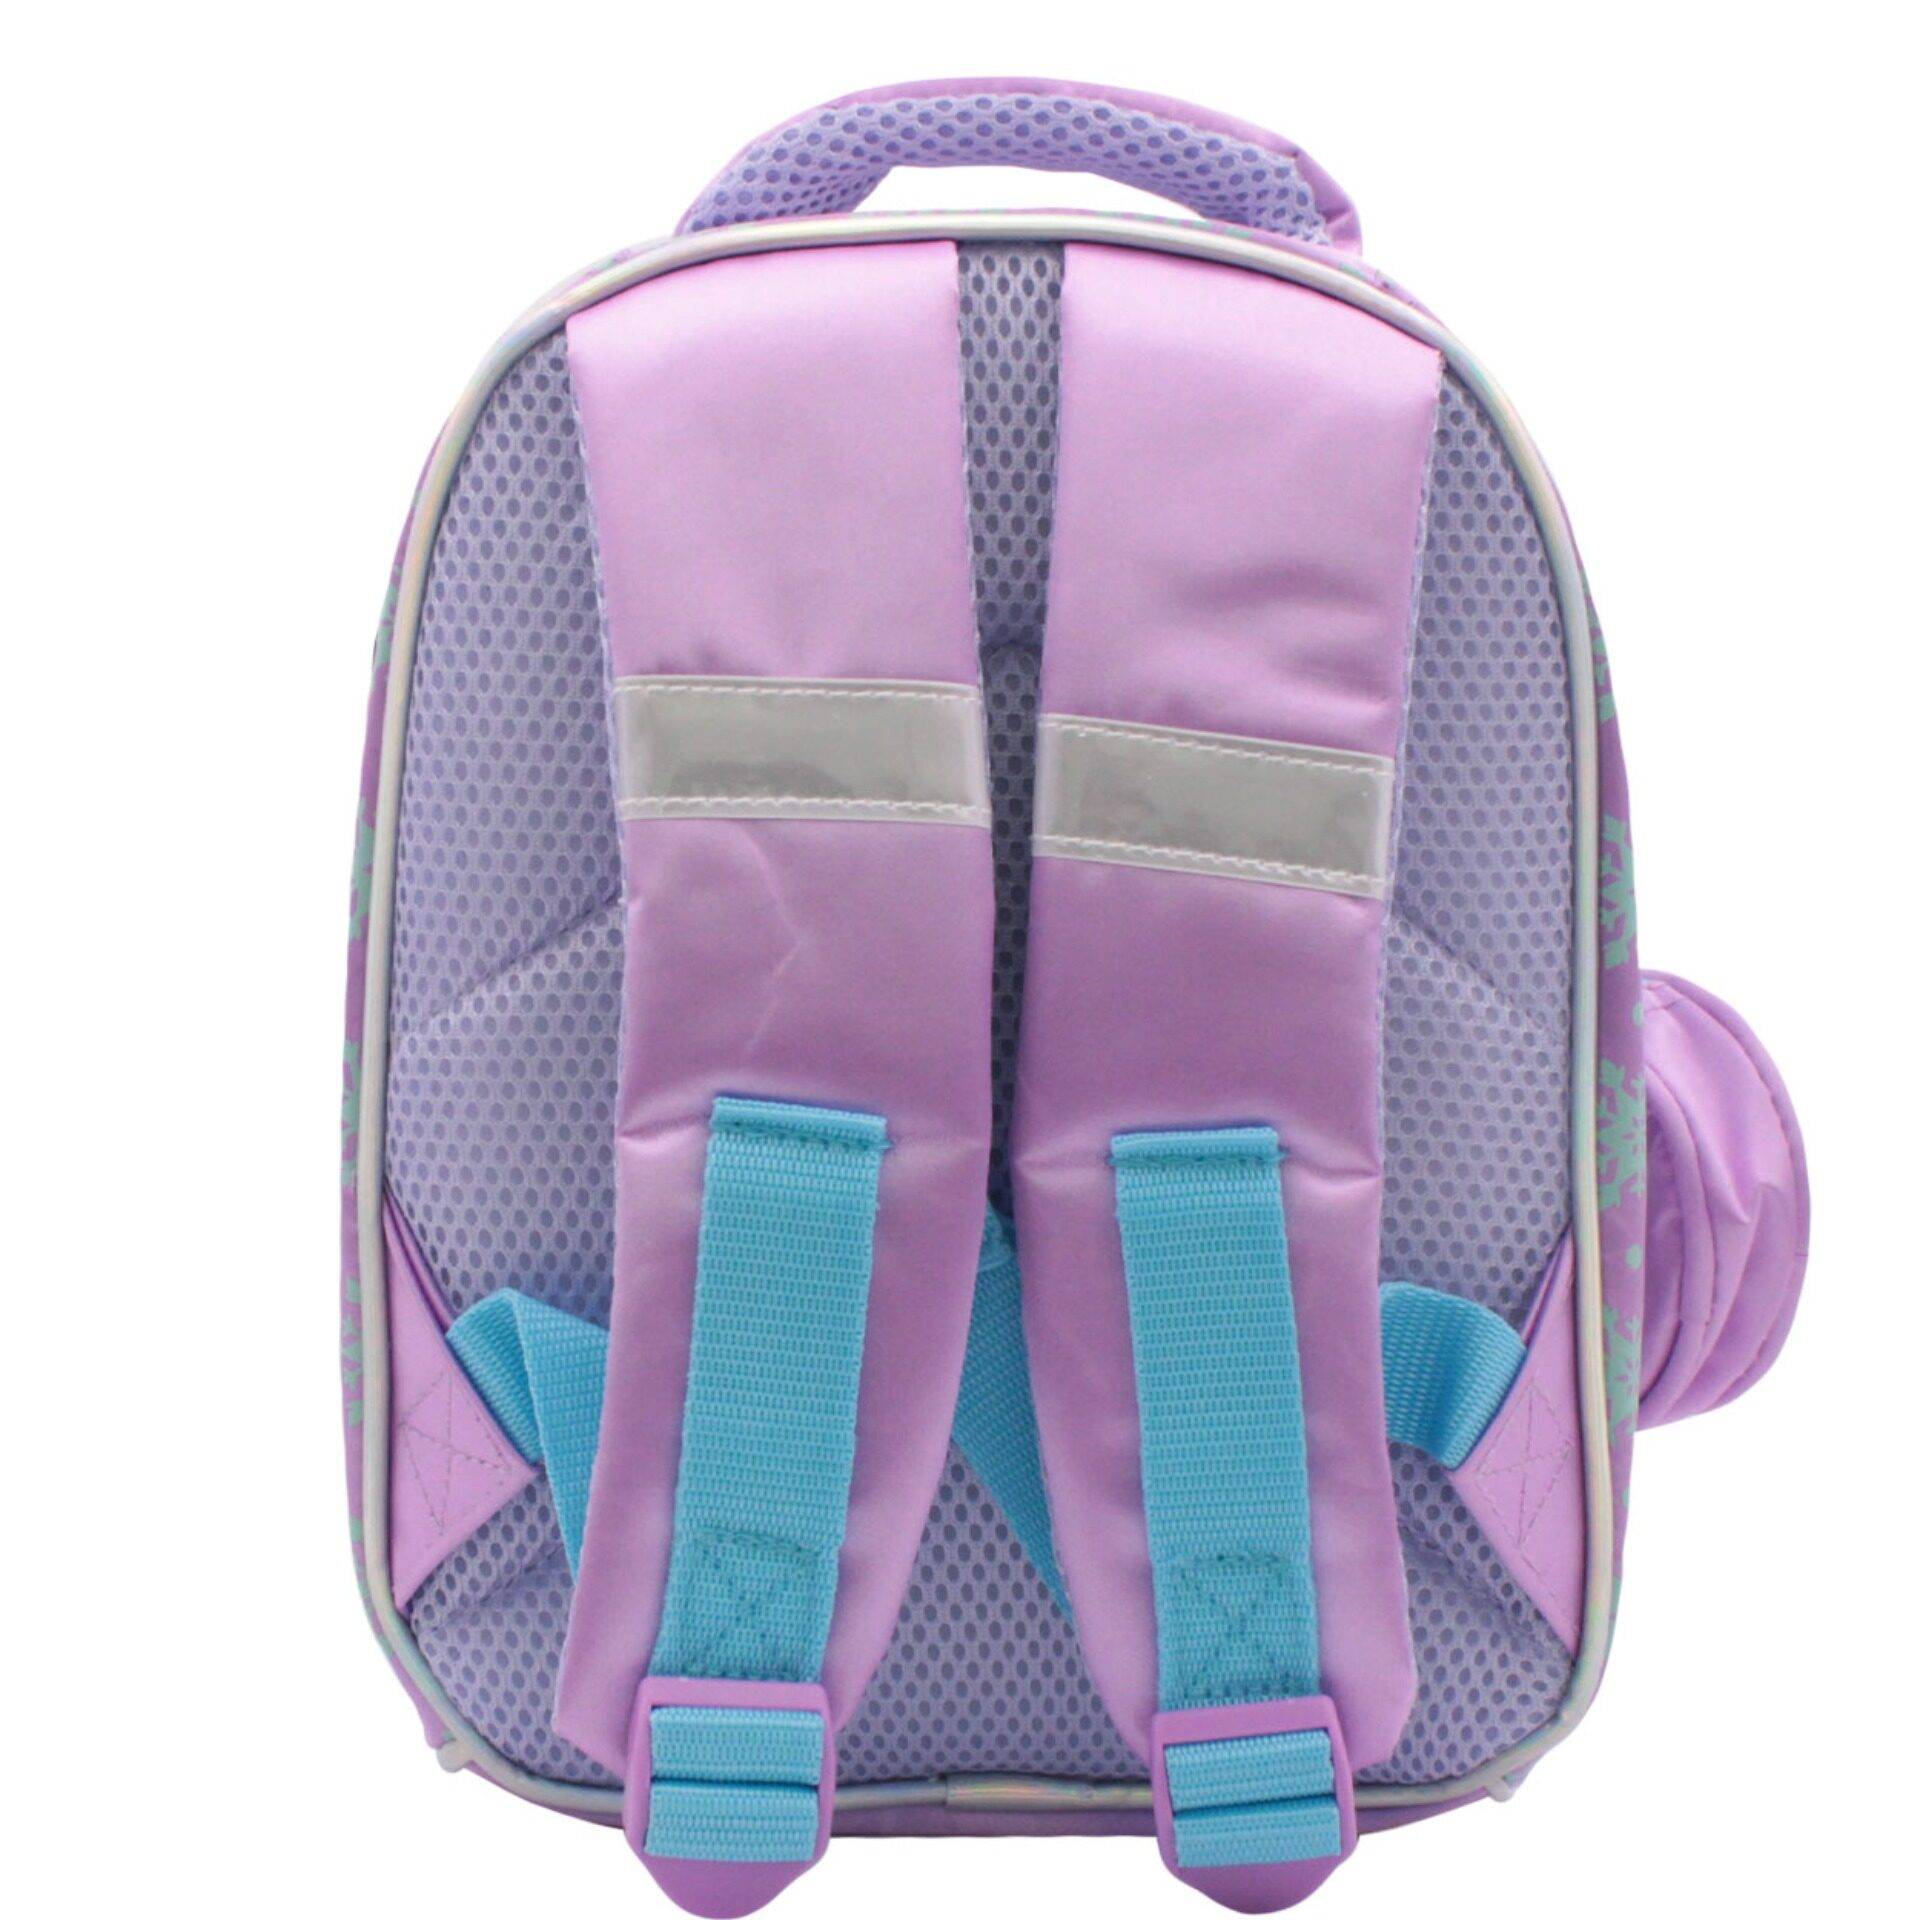 Disney Frozen 2 Princess Elsa & Anna 10 Inch School Backpack with Small Purse (Age 4 & Above)